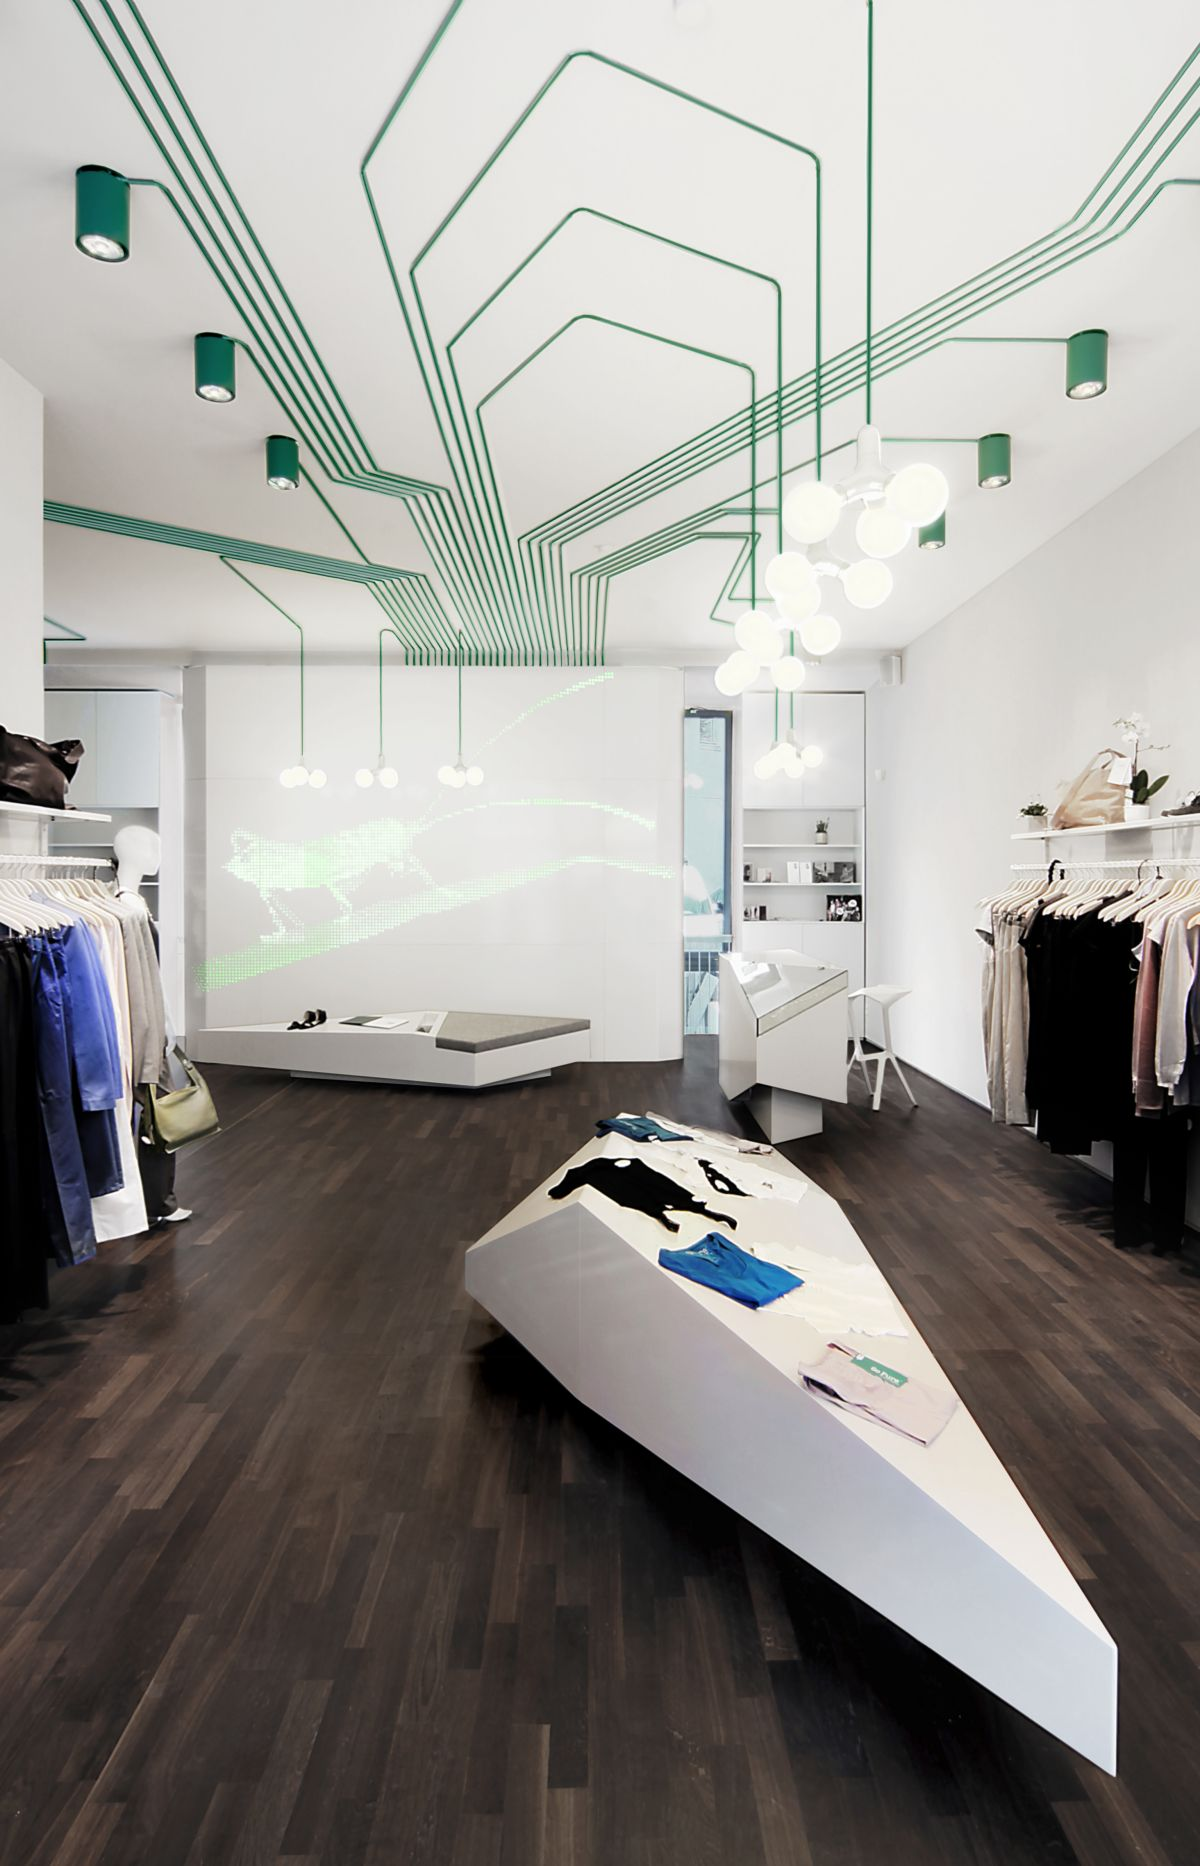 The maygreen shop interior by kinzo karmatrendz for Boutique interior design